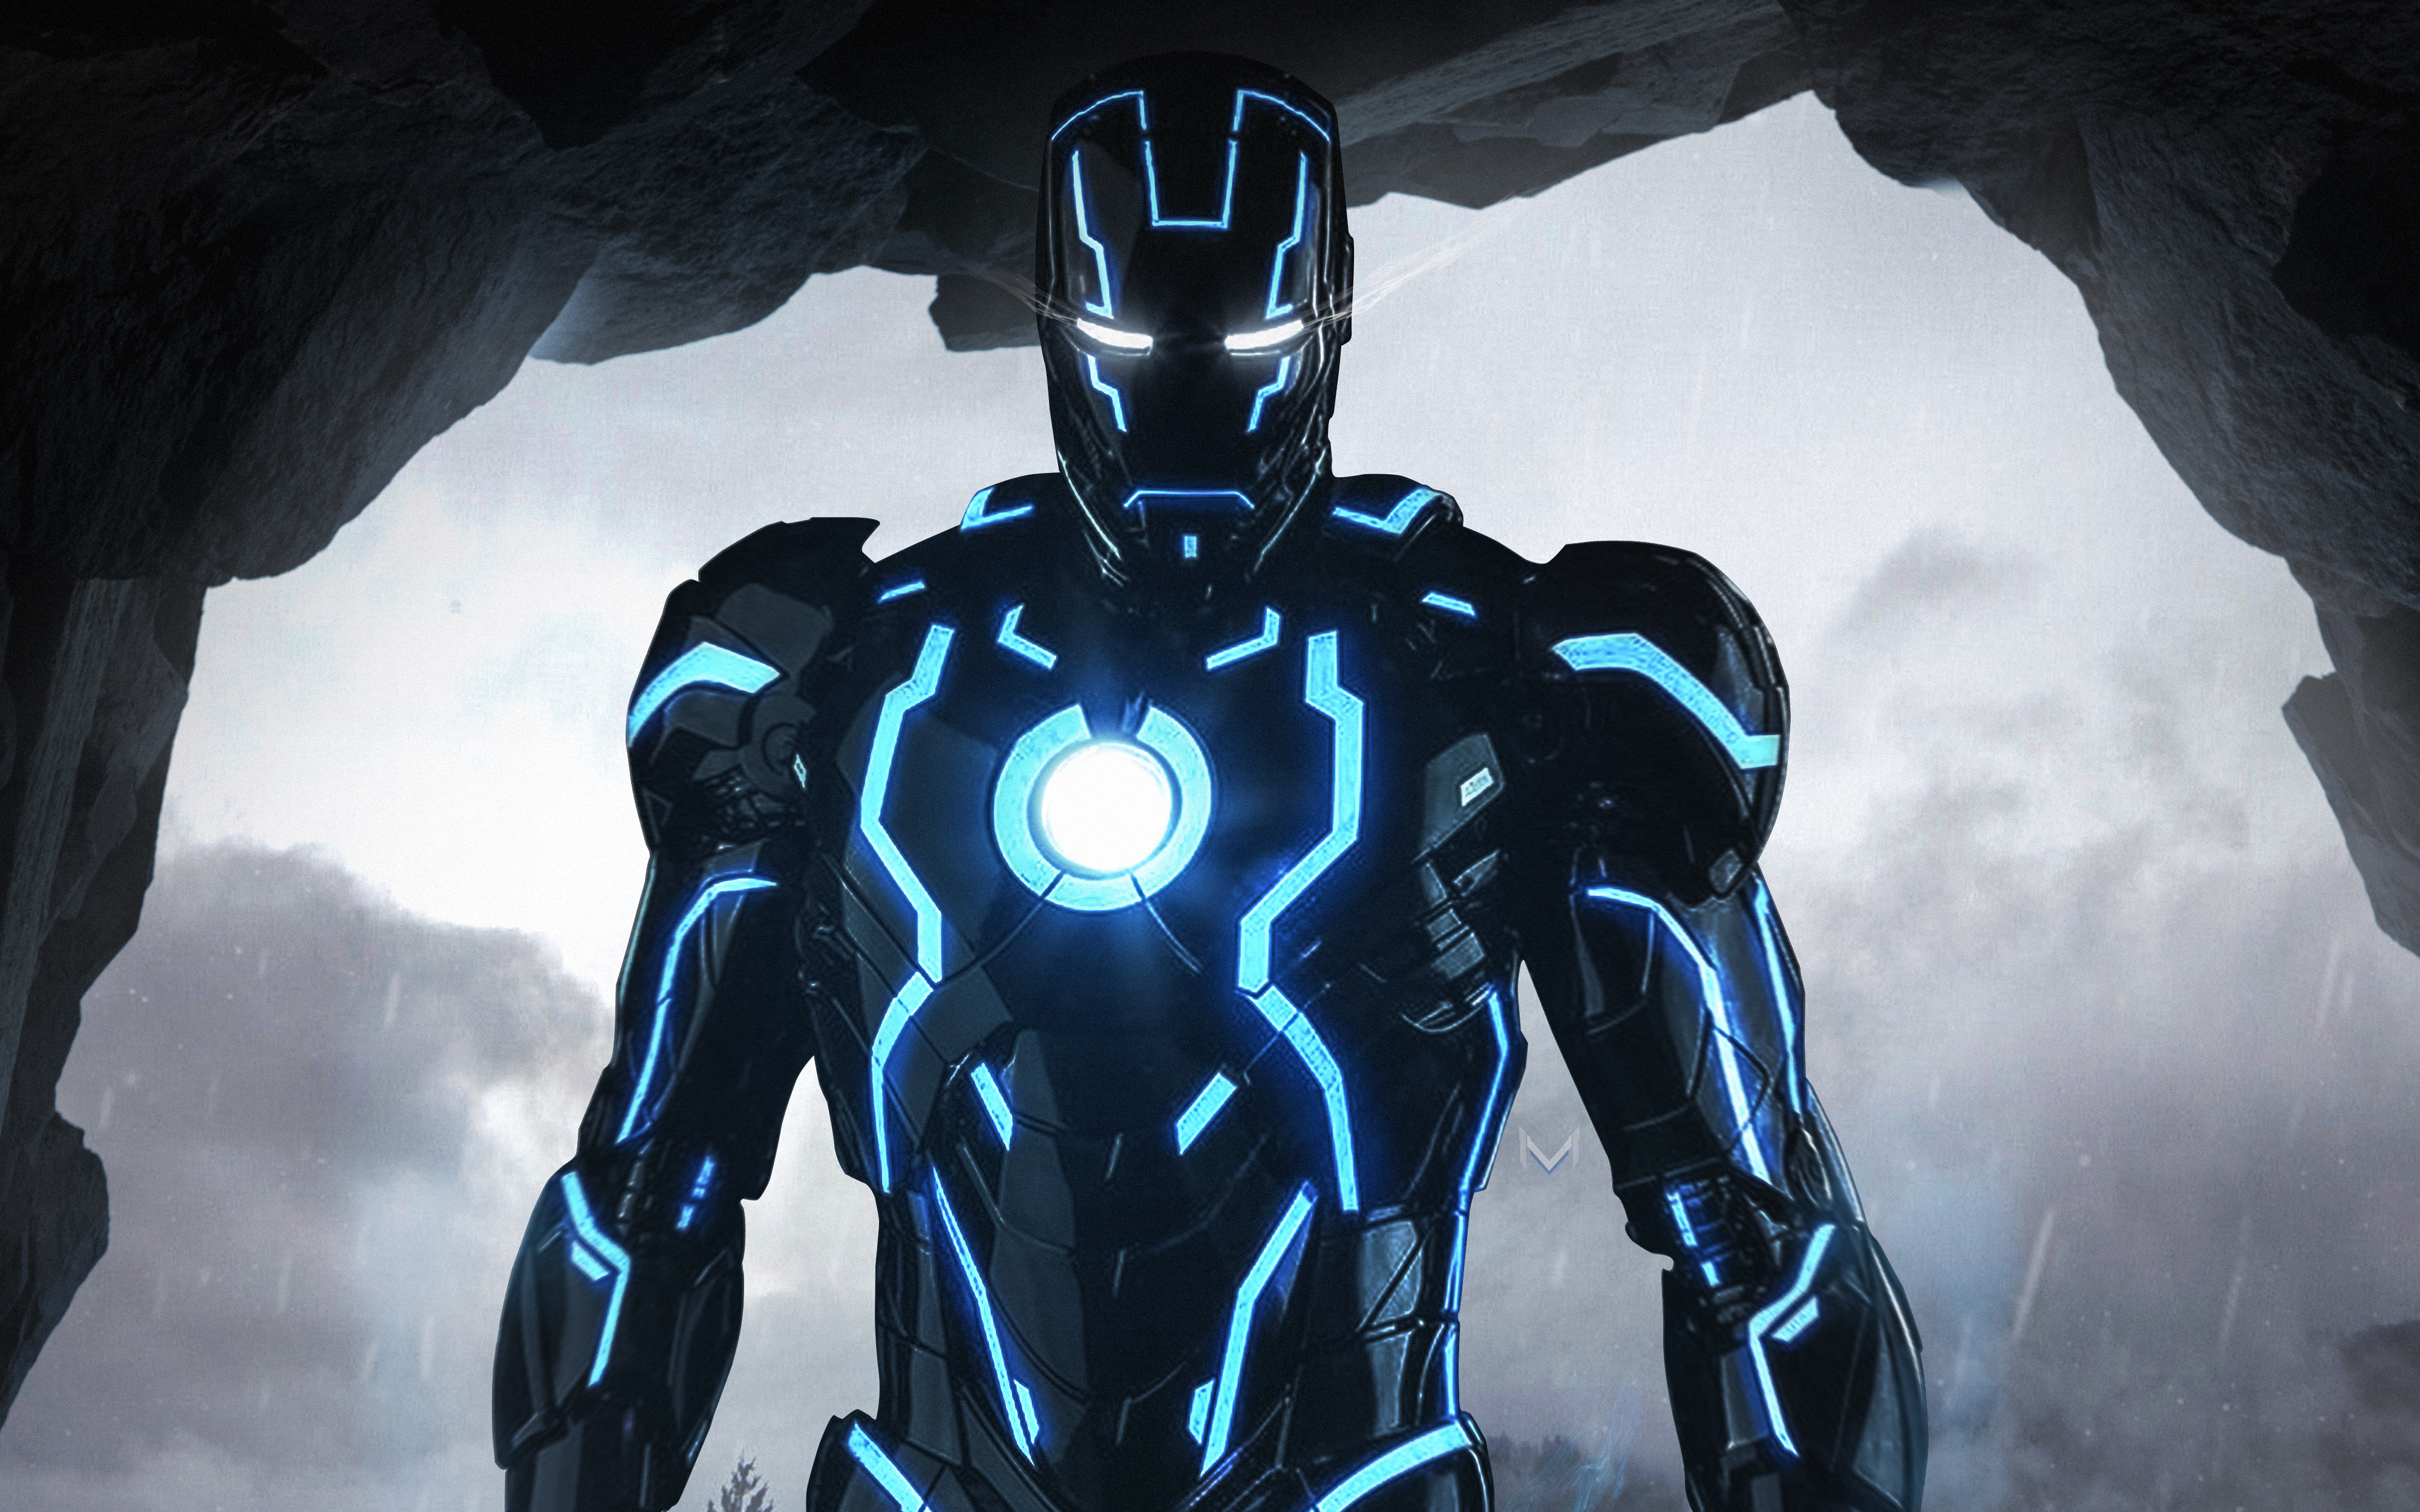 Neon Iron Man 4k Wallpapers Hd Wallpapers